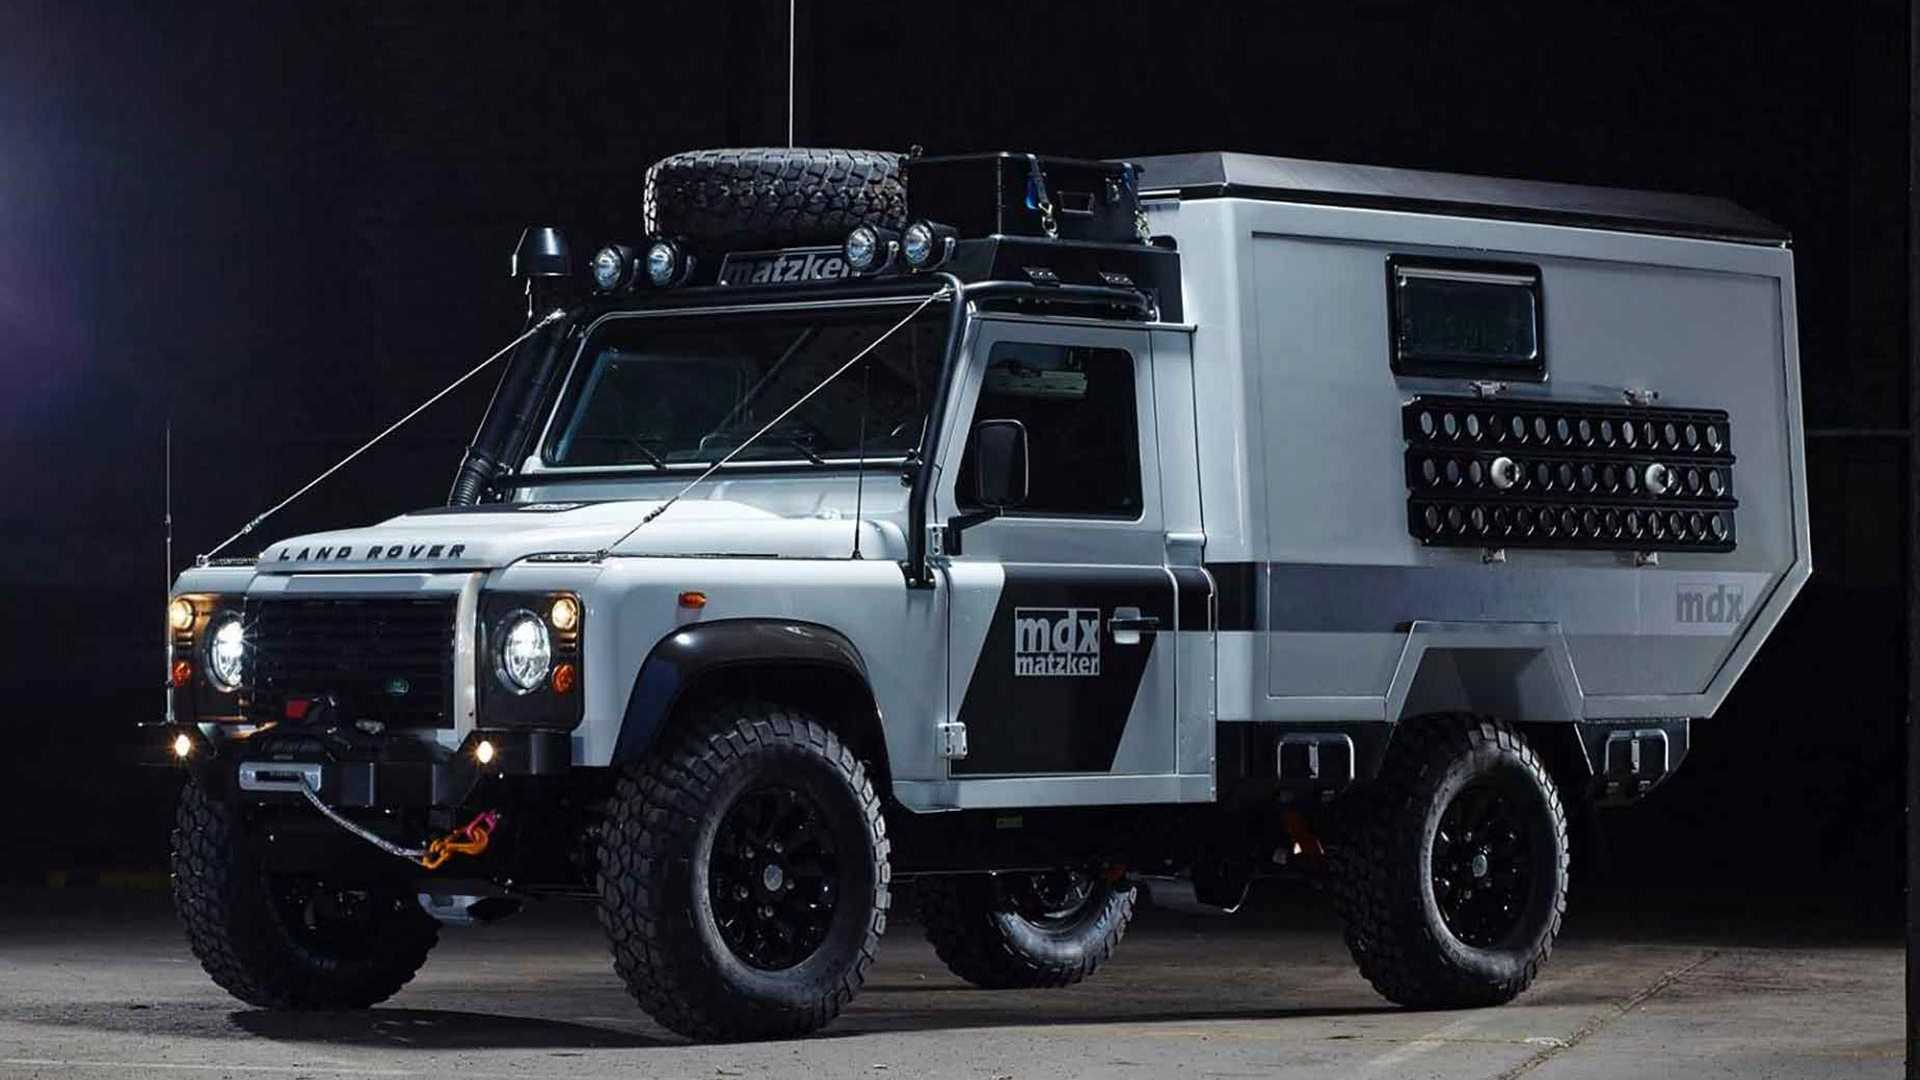 Land Rover Defender Gets Camper Makeover From Matzker